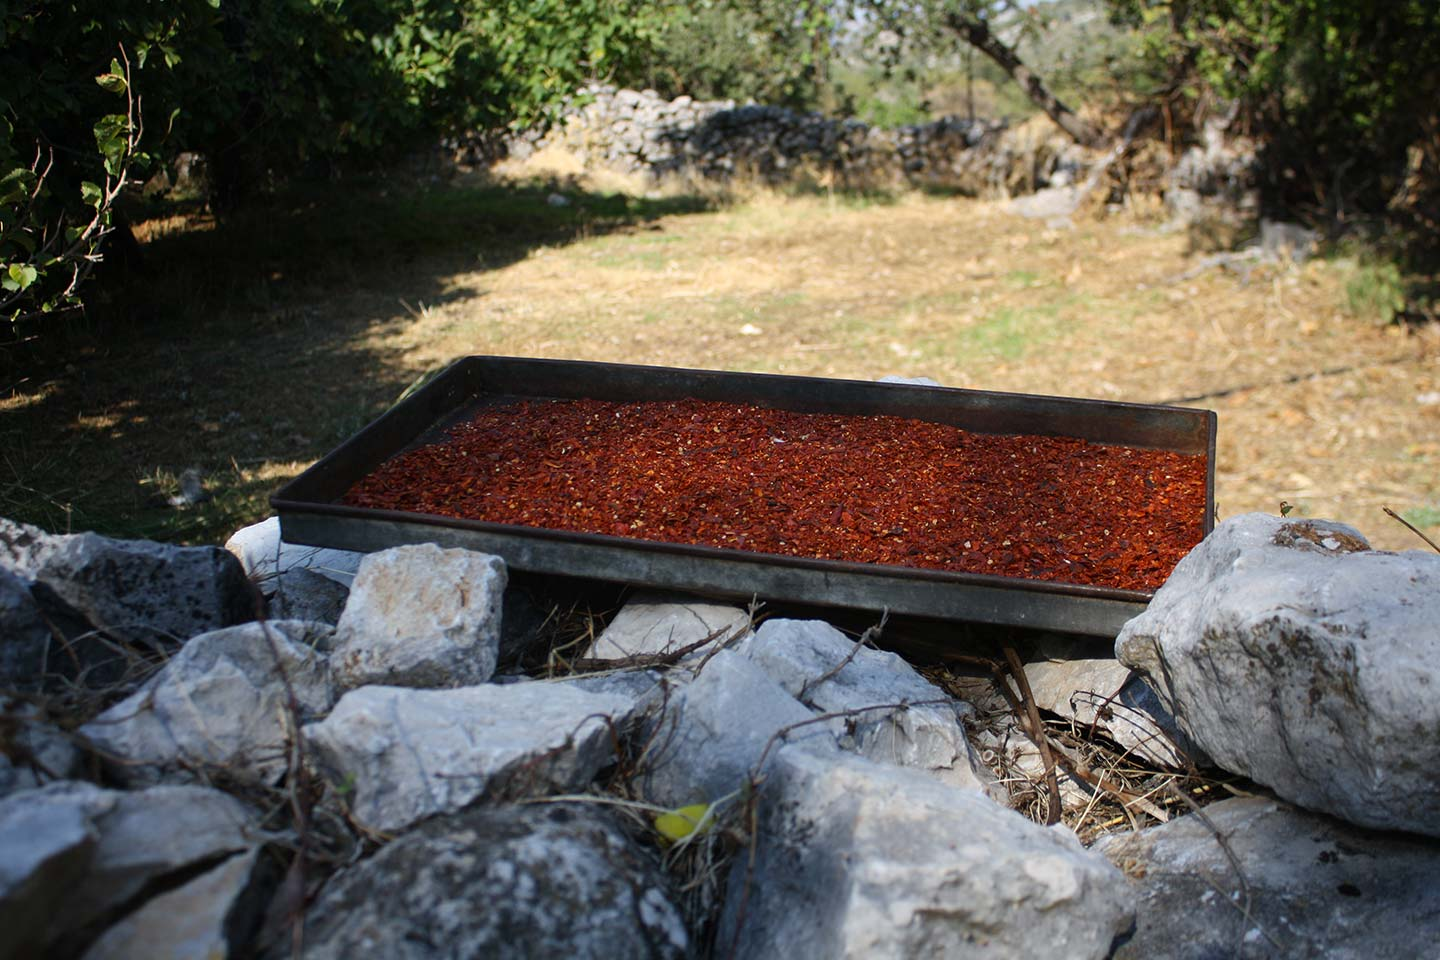 Drying Chilli